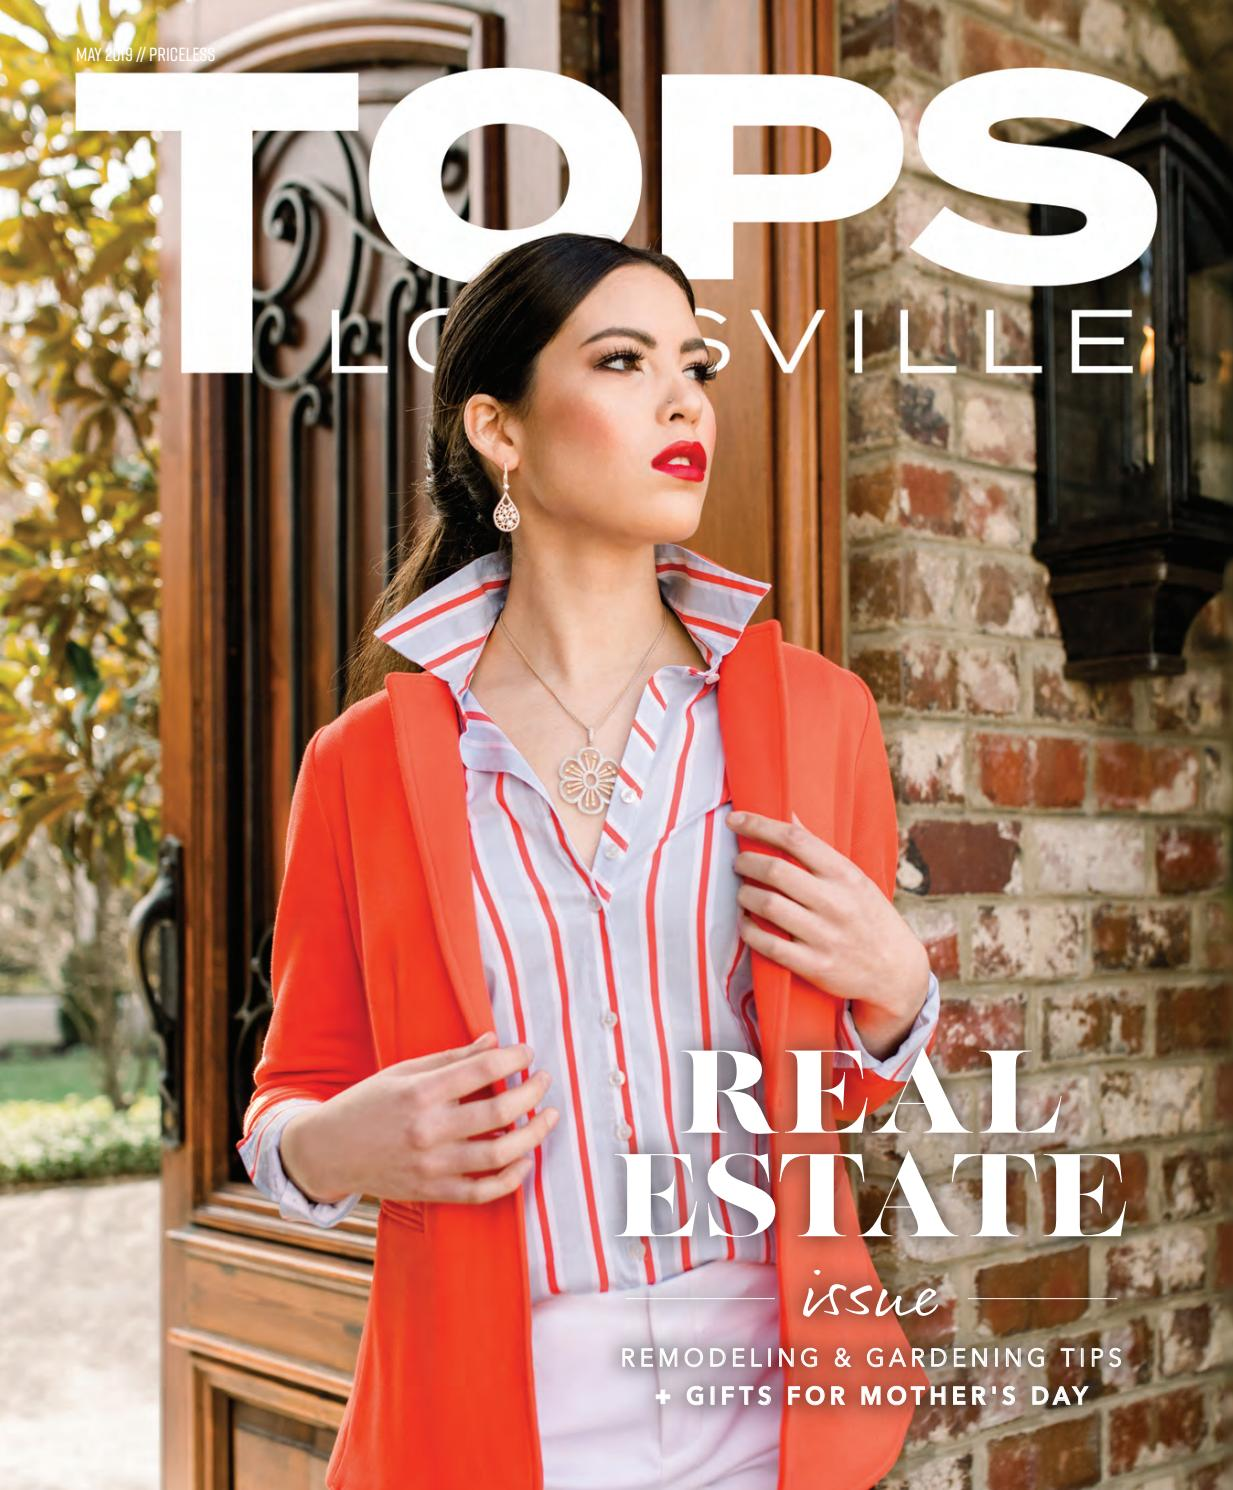 475373f5c30 TOPS Louisville  May 2019 by TOPS Magazine - issuu